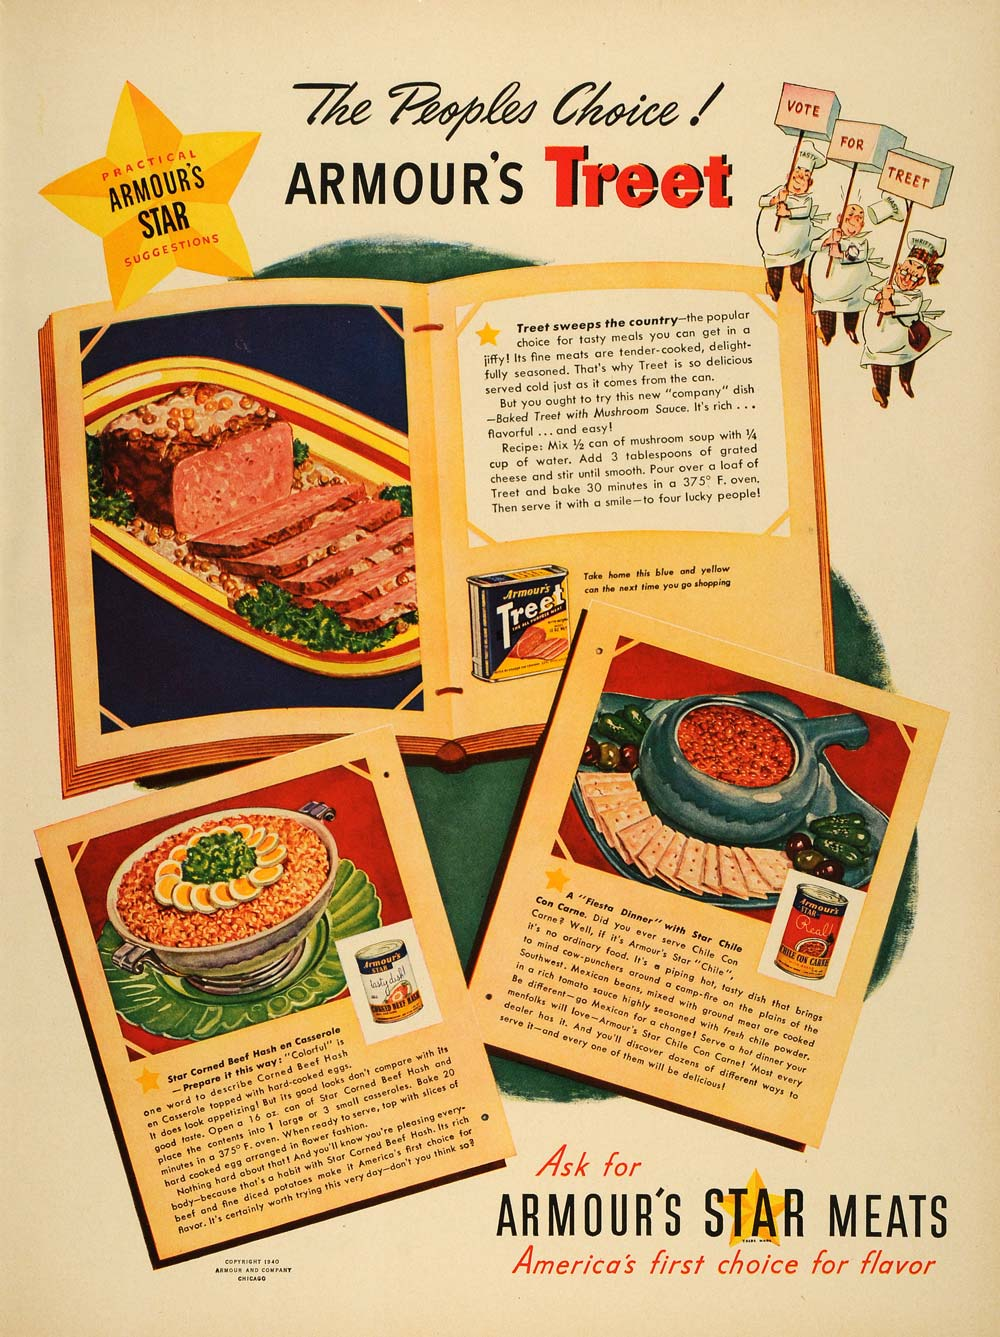 1940 Ad Armour Treet Star Meats Recipes Casserole Chili - ORIGINAL LF3